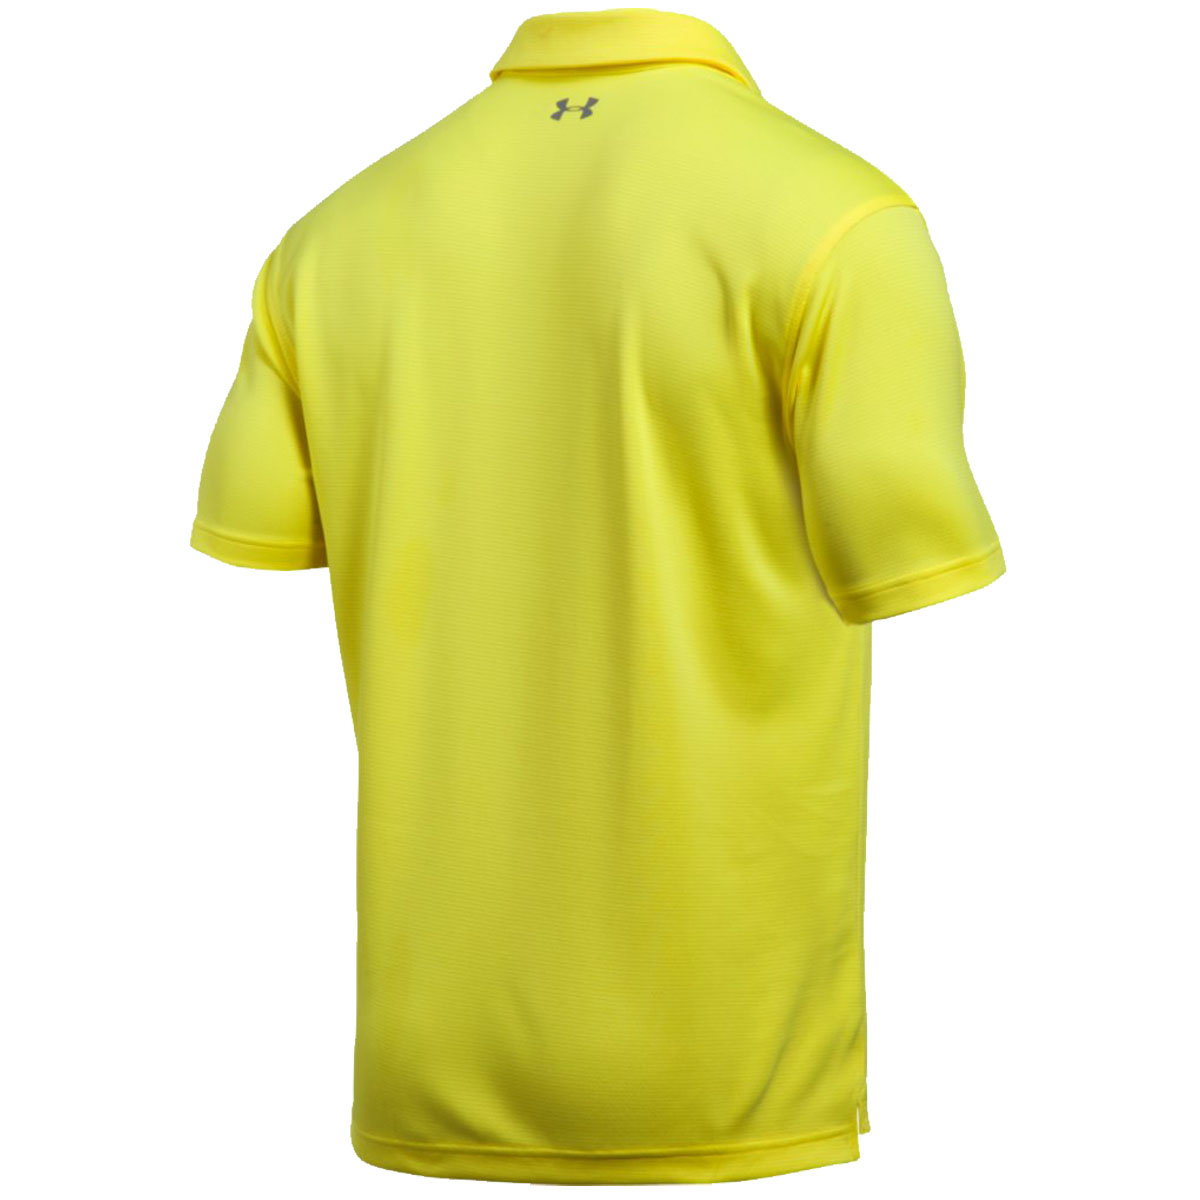 Under-Armour-Mens-Golf-Tech-Wicking-Textured-Soft-Light-Polo-Shirt thumbnail 67